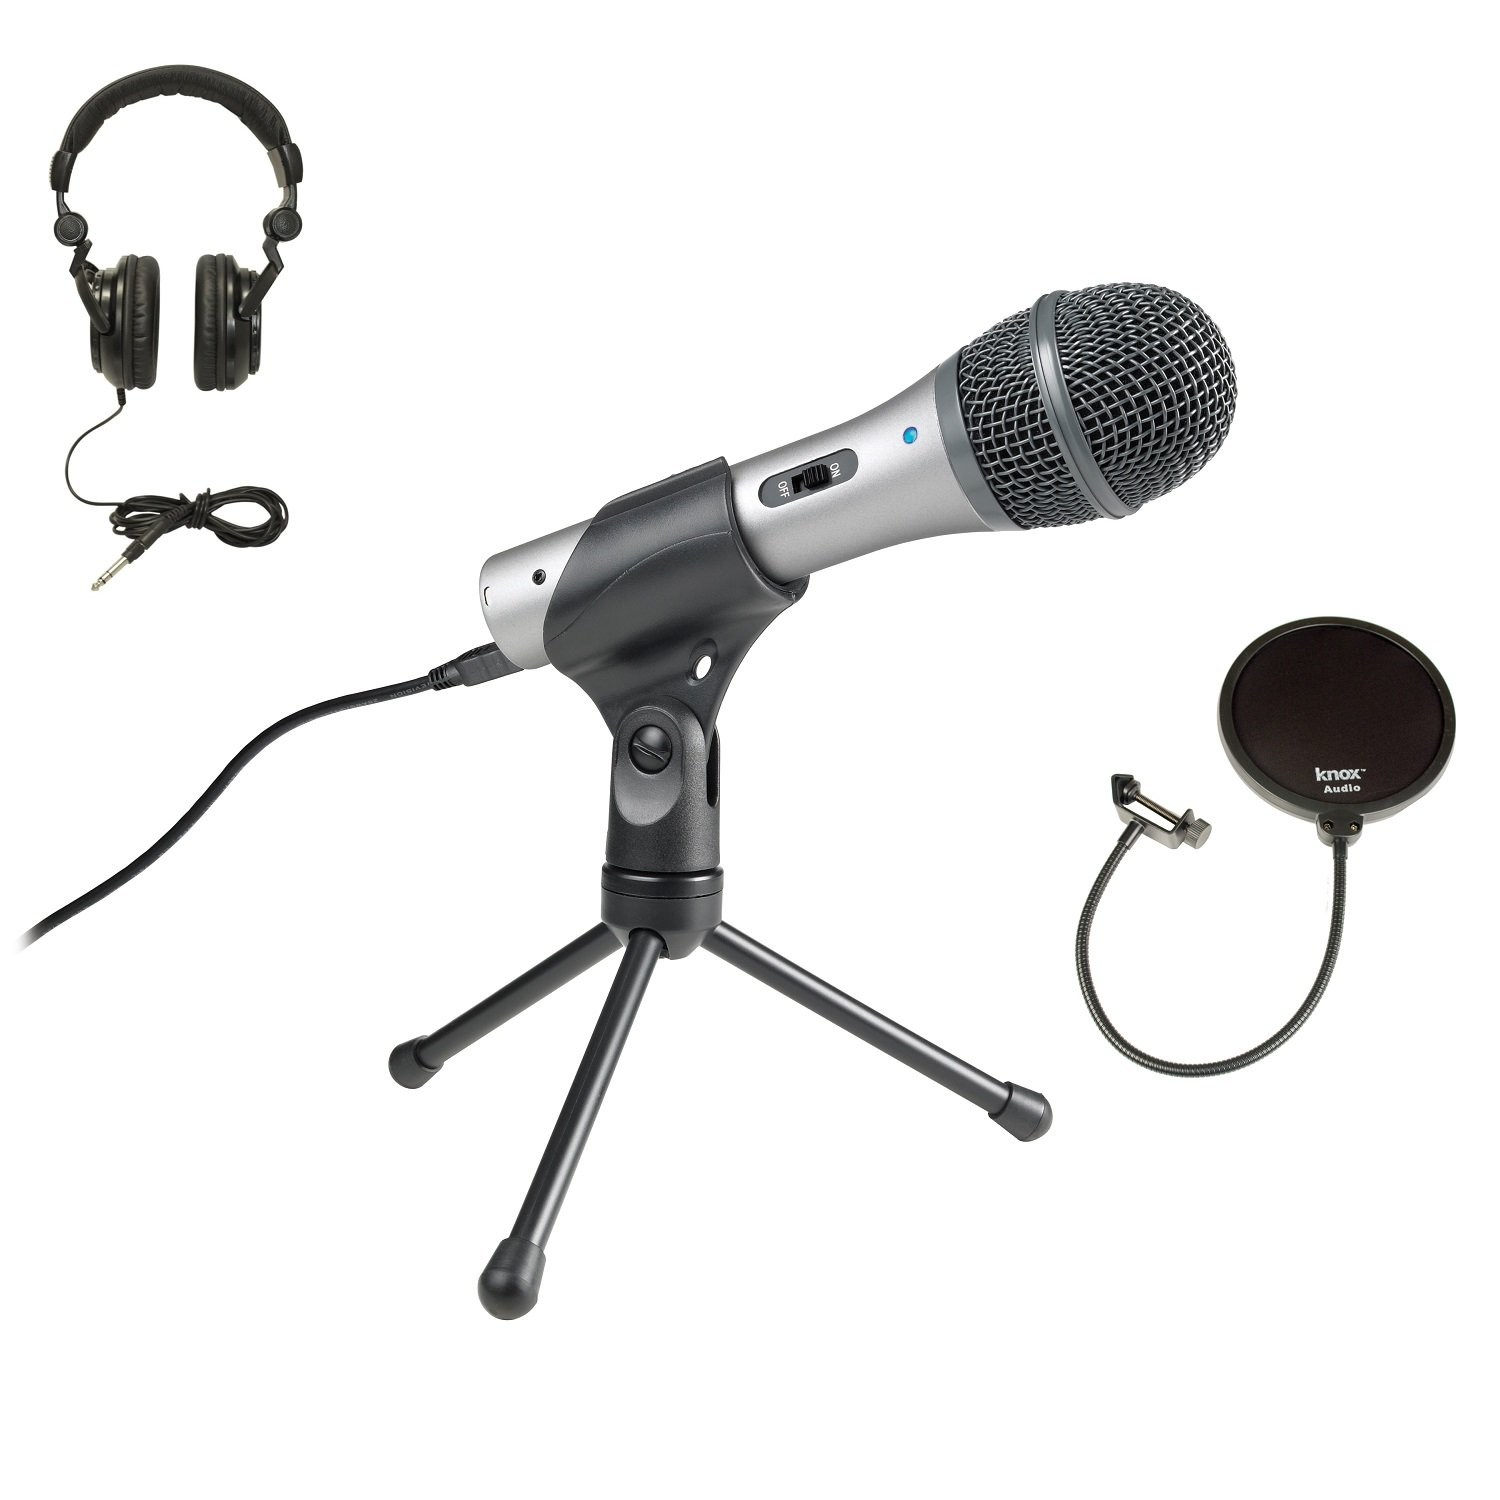 Audio-Technica ATR2100-USB USB/XLR Microphone with Knox Pop Filter and Headphones by Audio-Technica